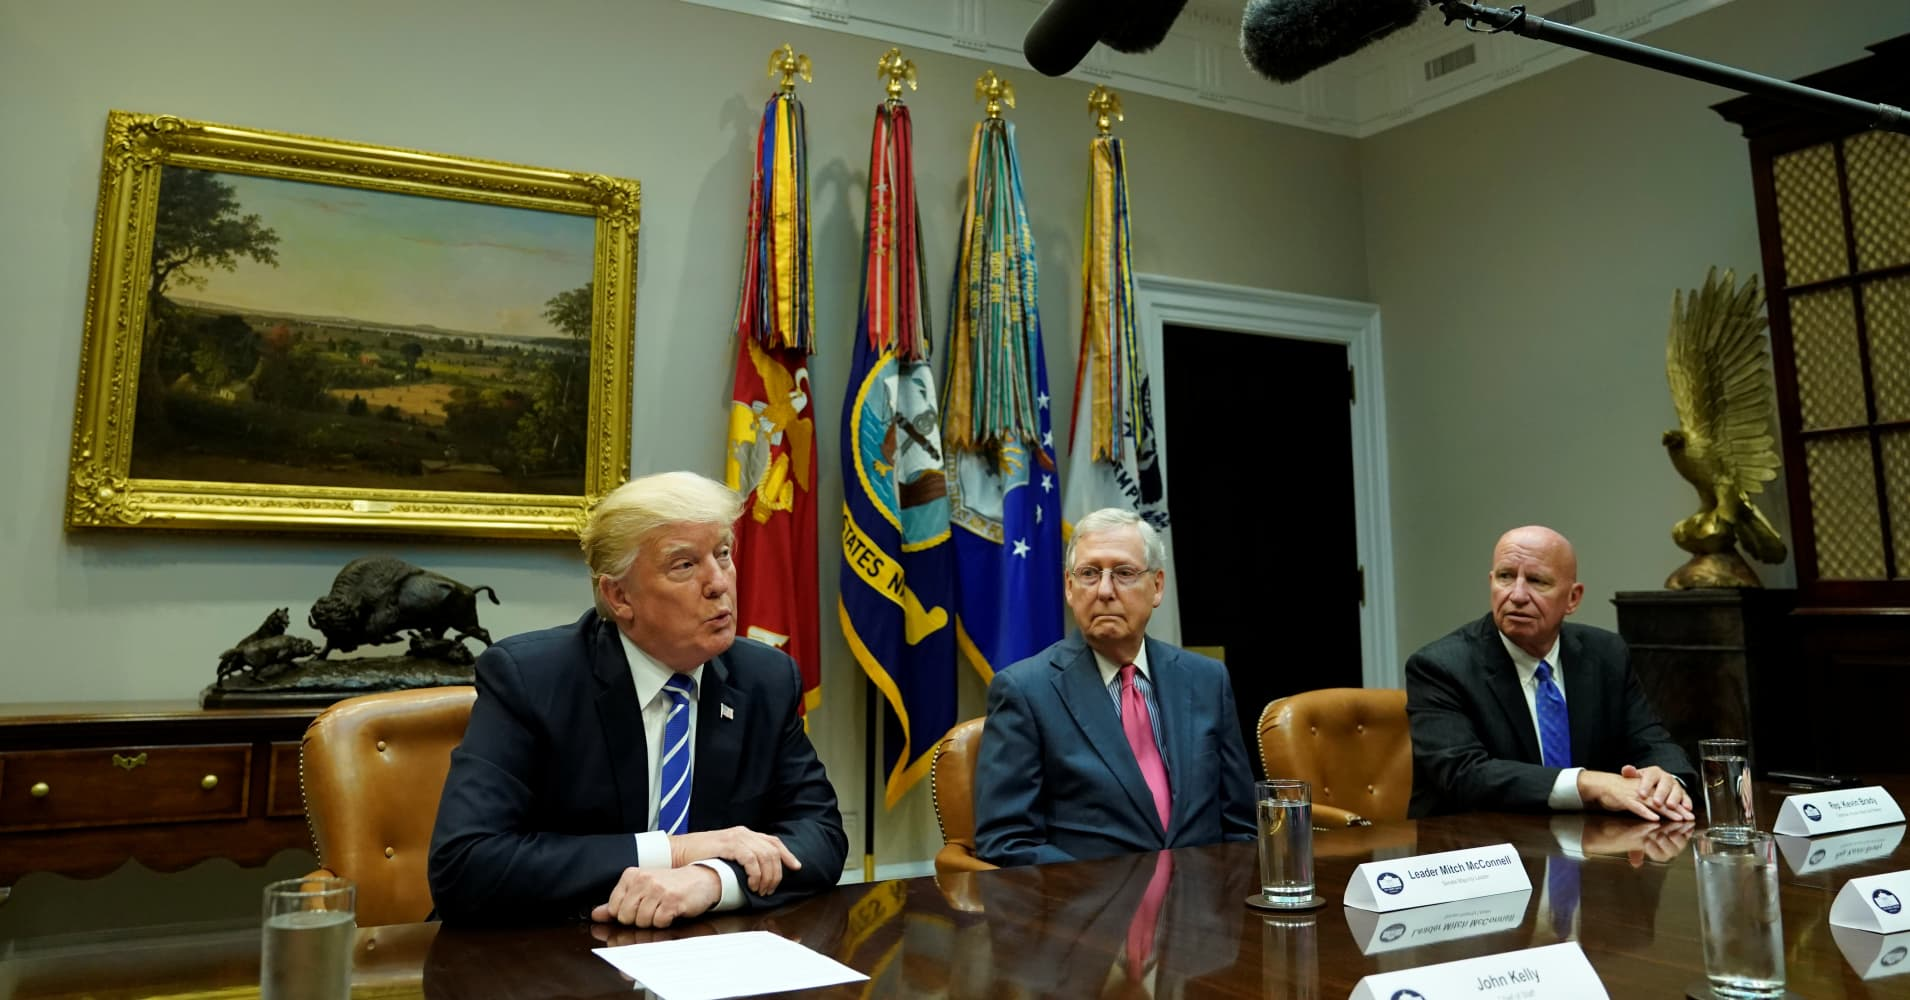 President Donald Trump speaks as Senate Majority Leader Mitch McConnell (R-KY) and Chairman of the House Ways and Means Committee Kevin Brady (R-TX) listen during a meeting of Republican congressional leaders about tax reform at the White House in Washington,DC, on September 5, 2017.